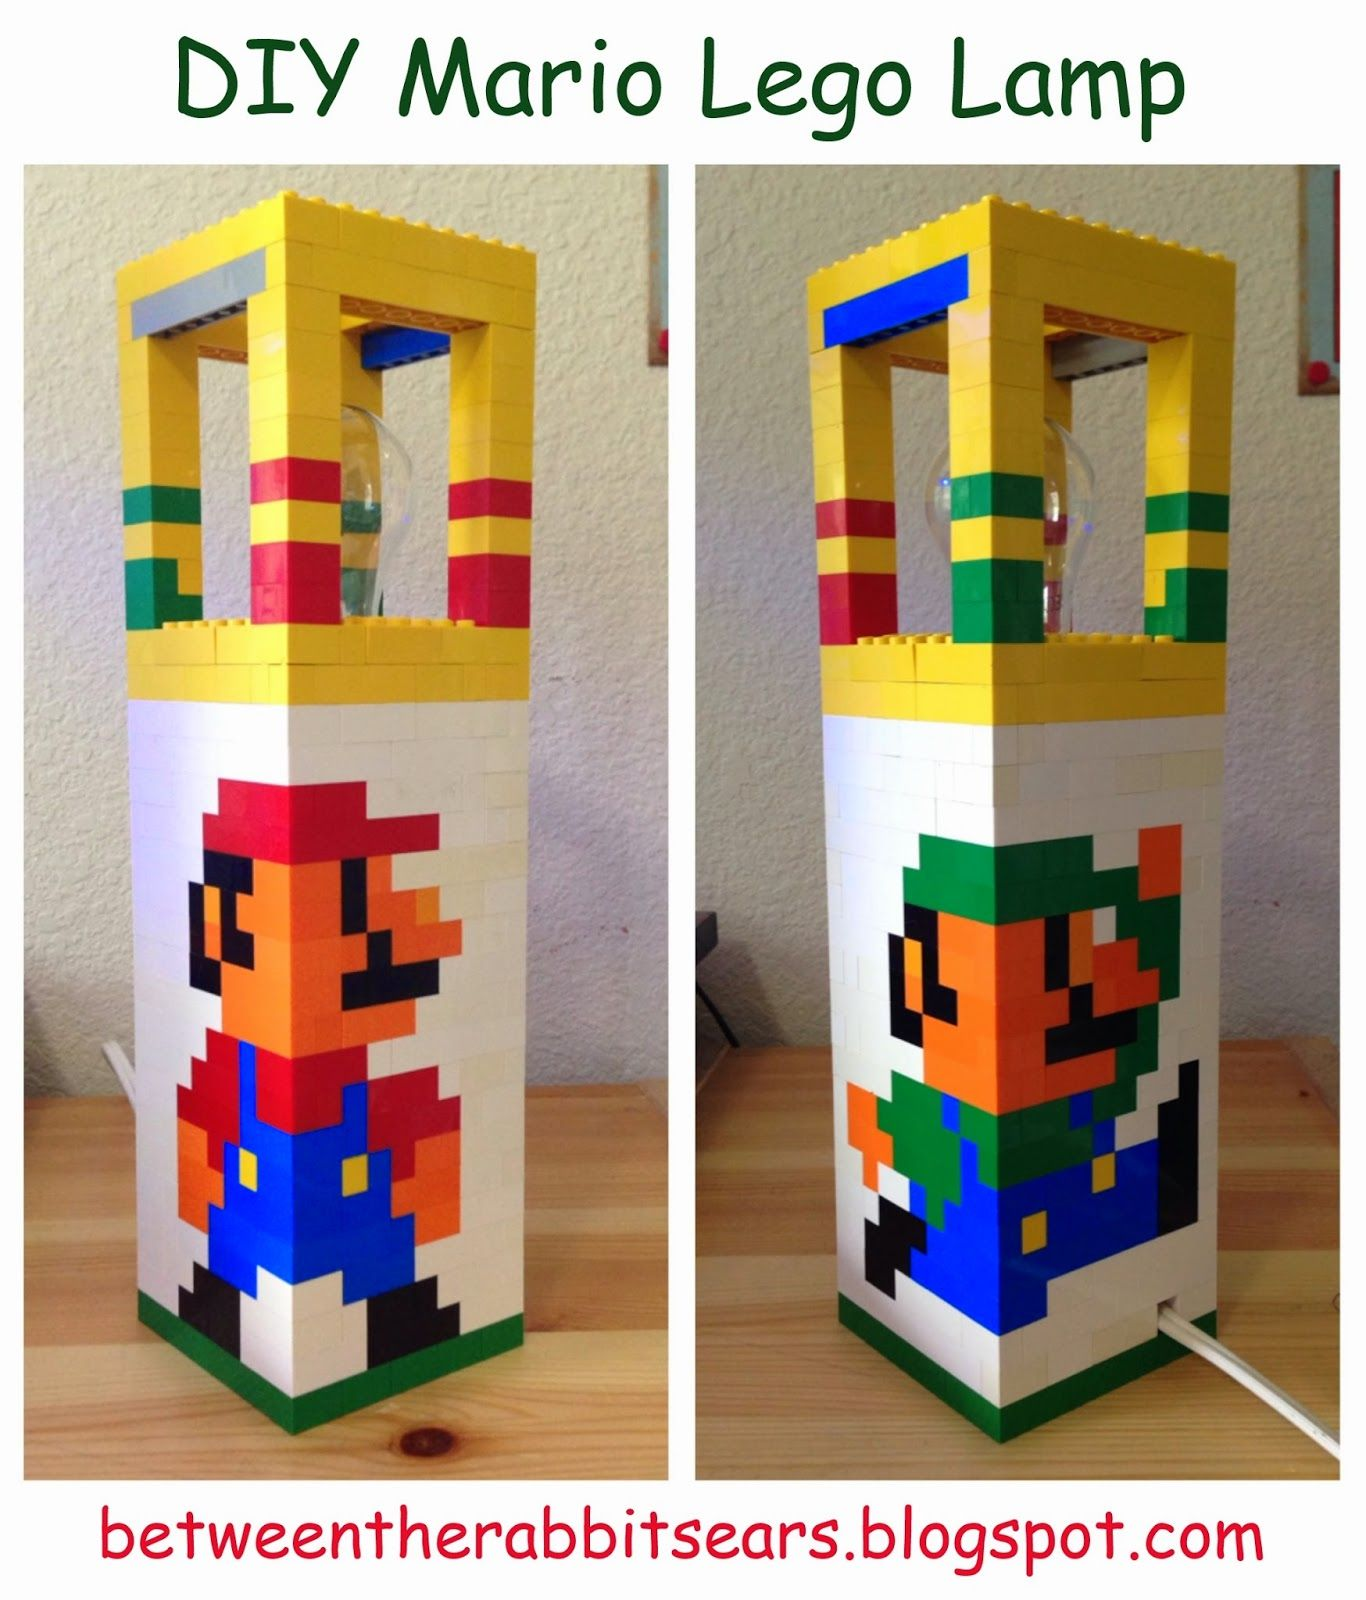 between the rabbits ears diy mario lego lamp with instructions - Boys Room Lego Ideas